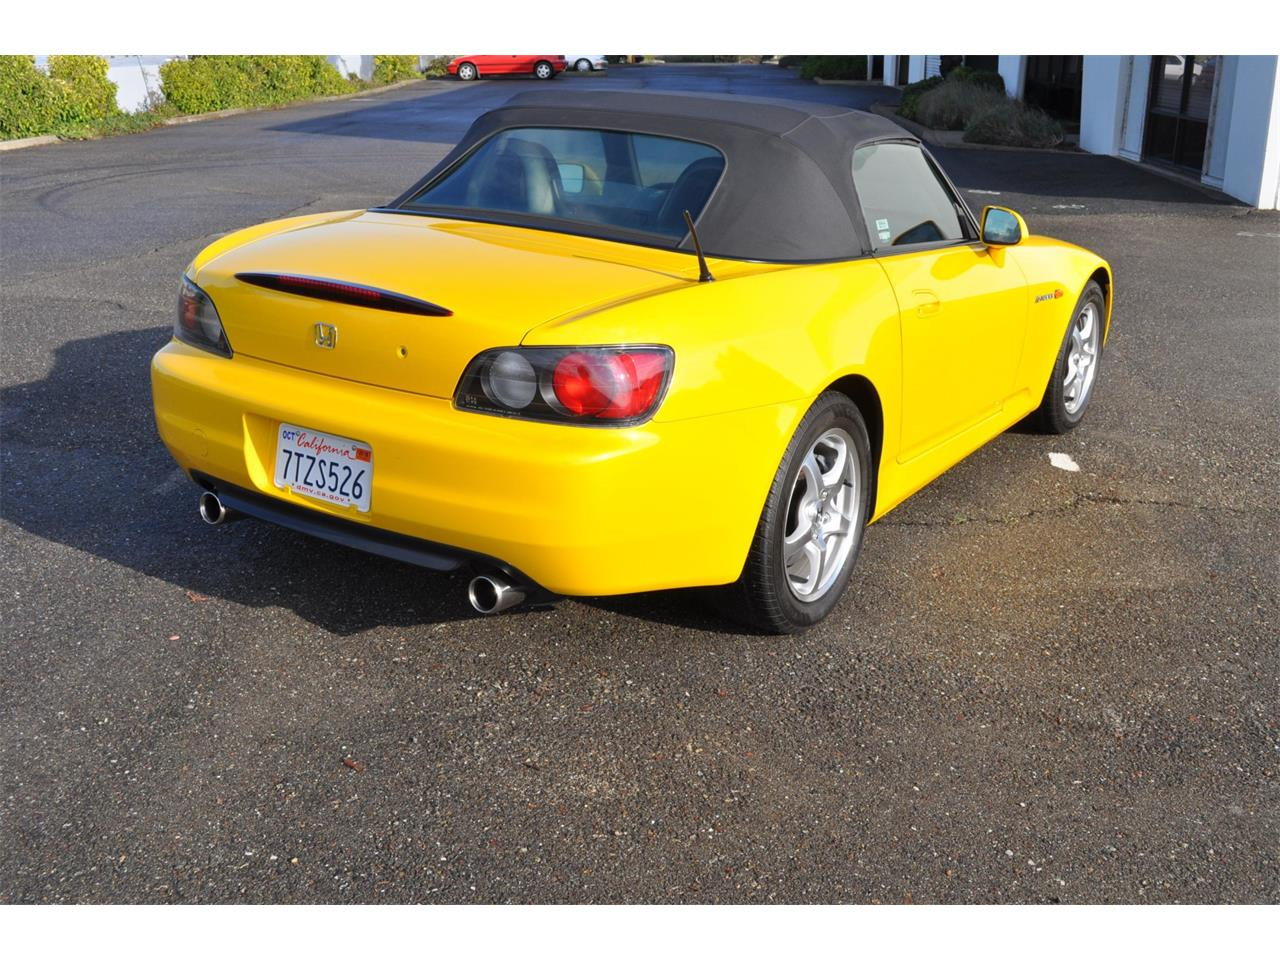 Large Picture of 2000 Honda S2000 located in California Offered by Bring A Trailer - QP2U